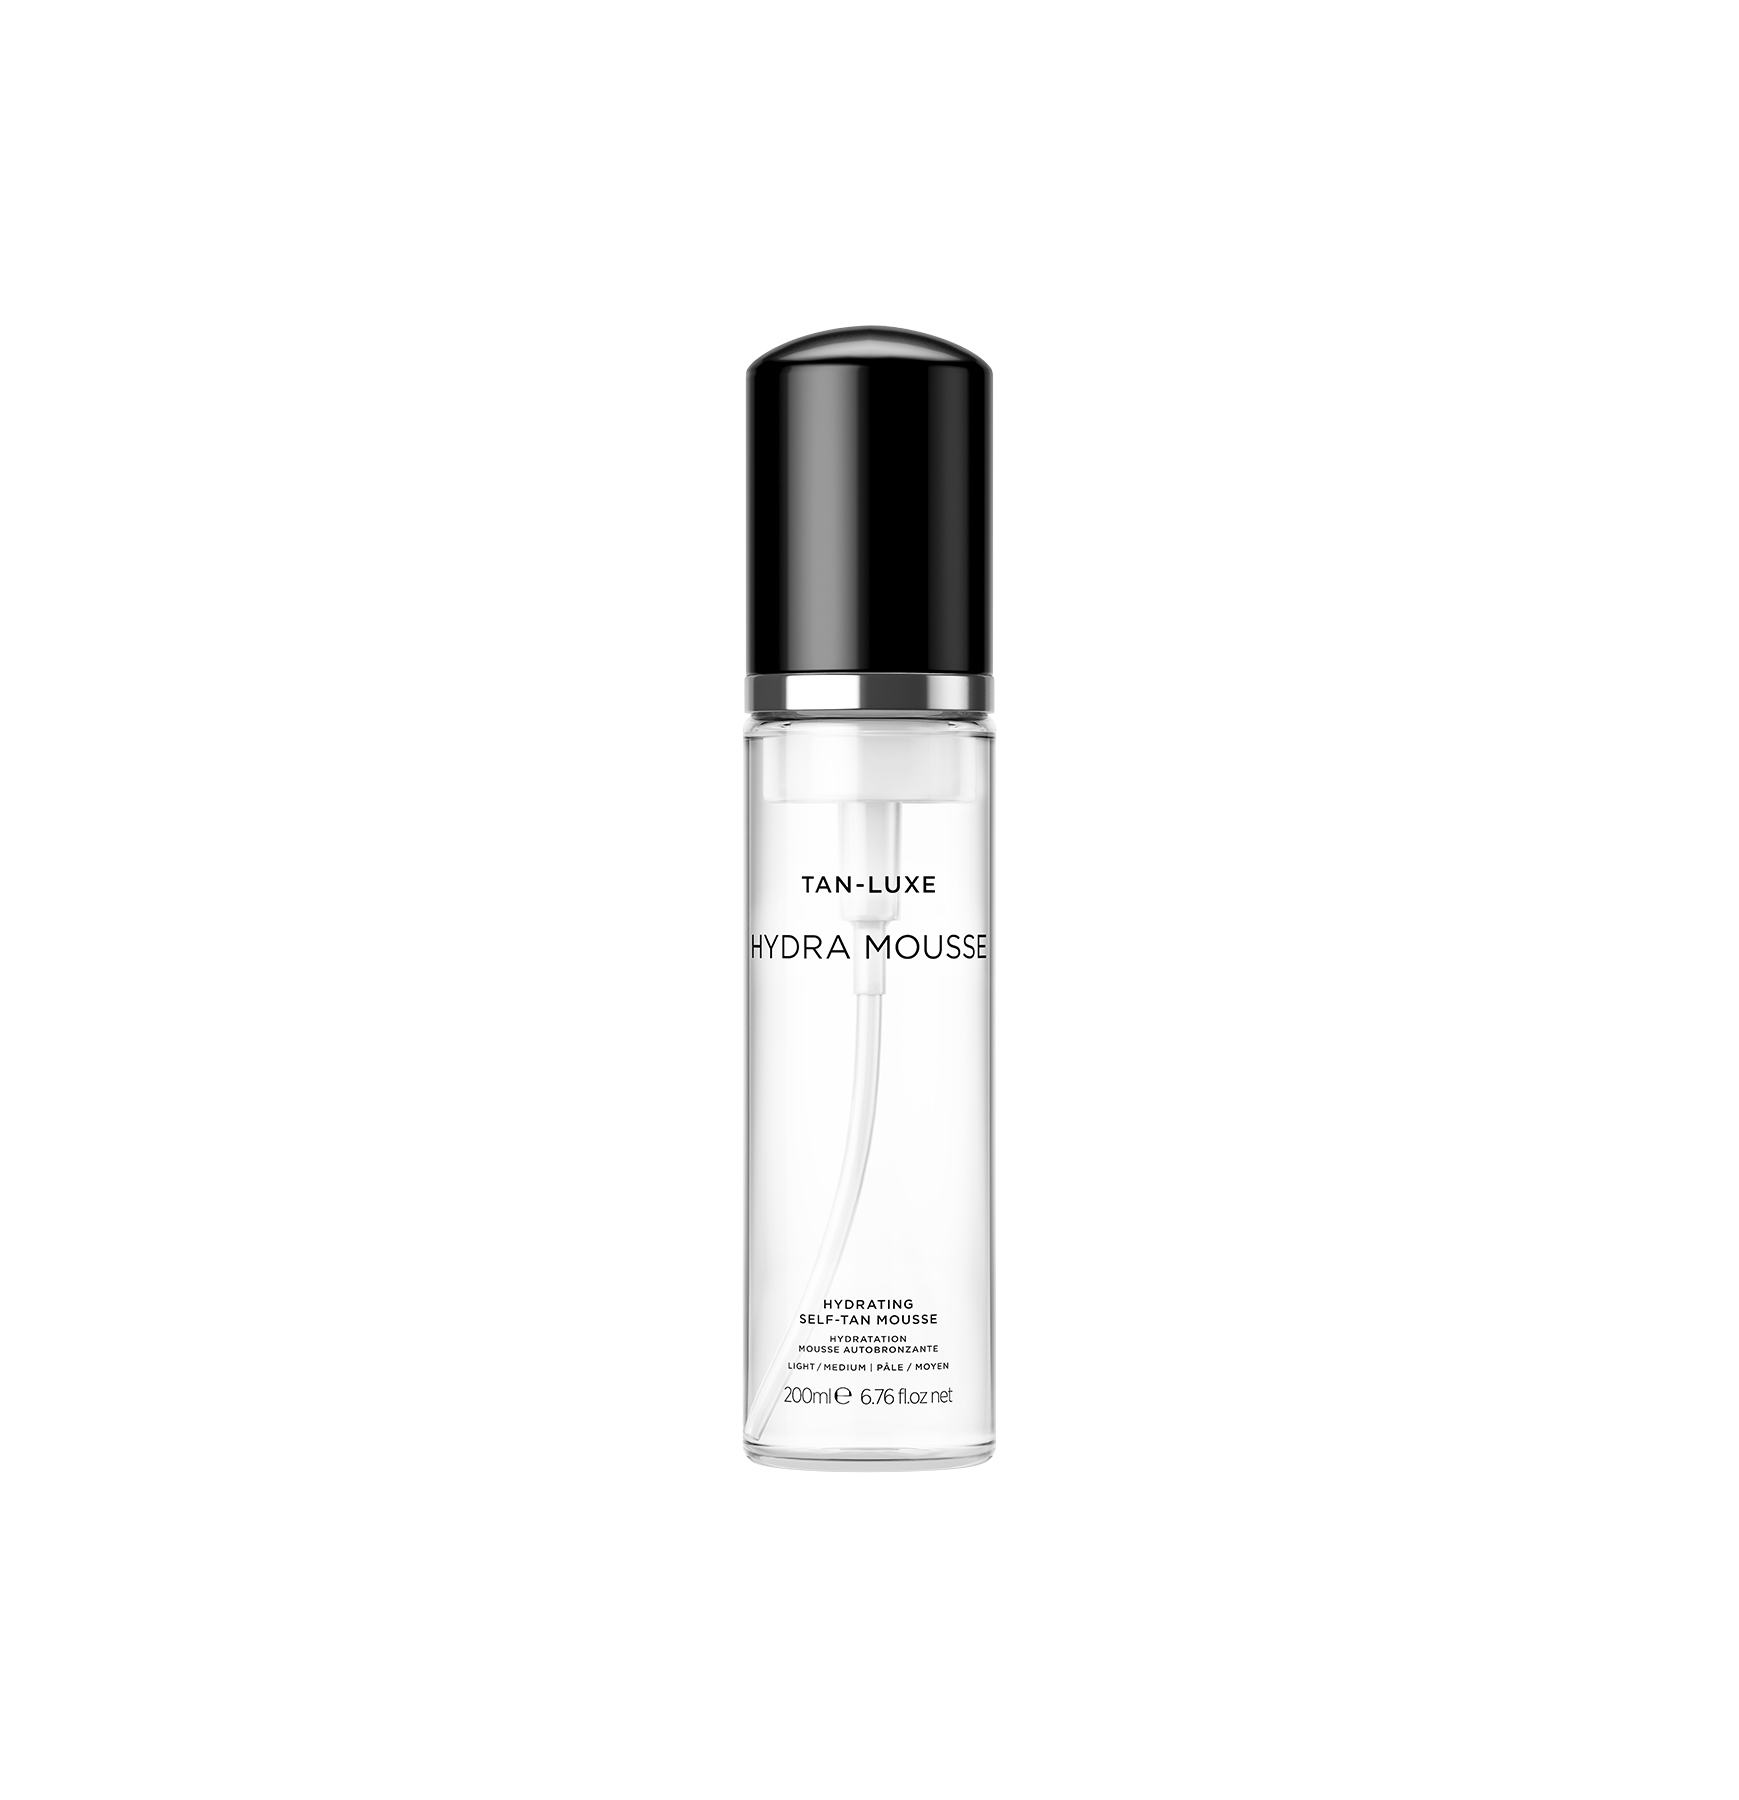 Tan-Luxe Hydra Mousse